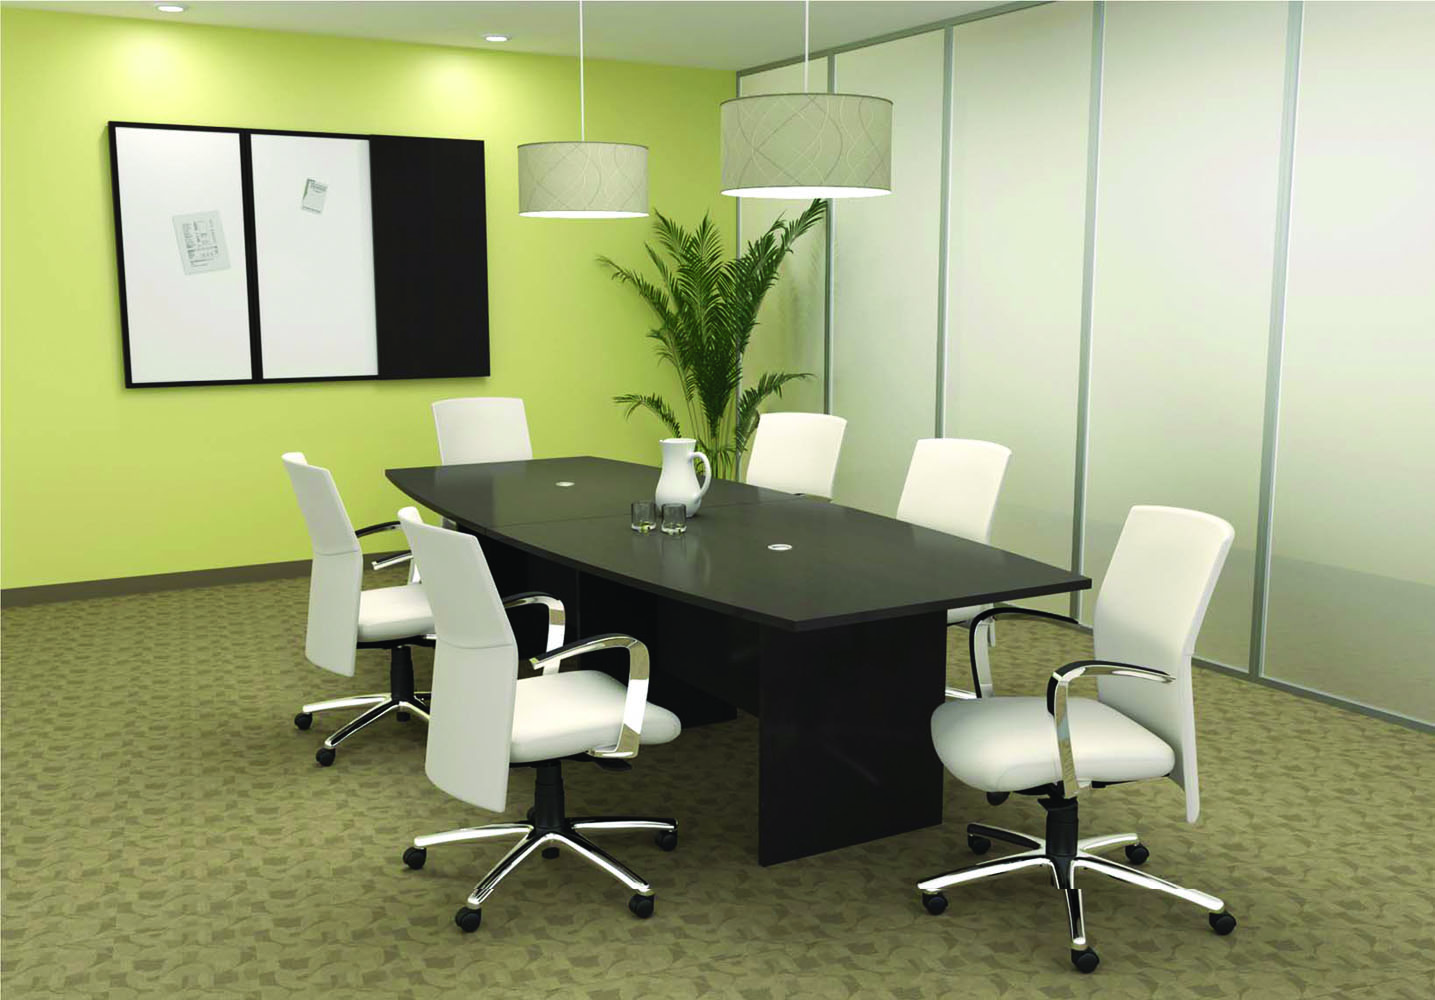 Office Furniture Sets #mrf-com13